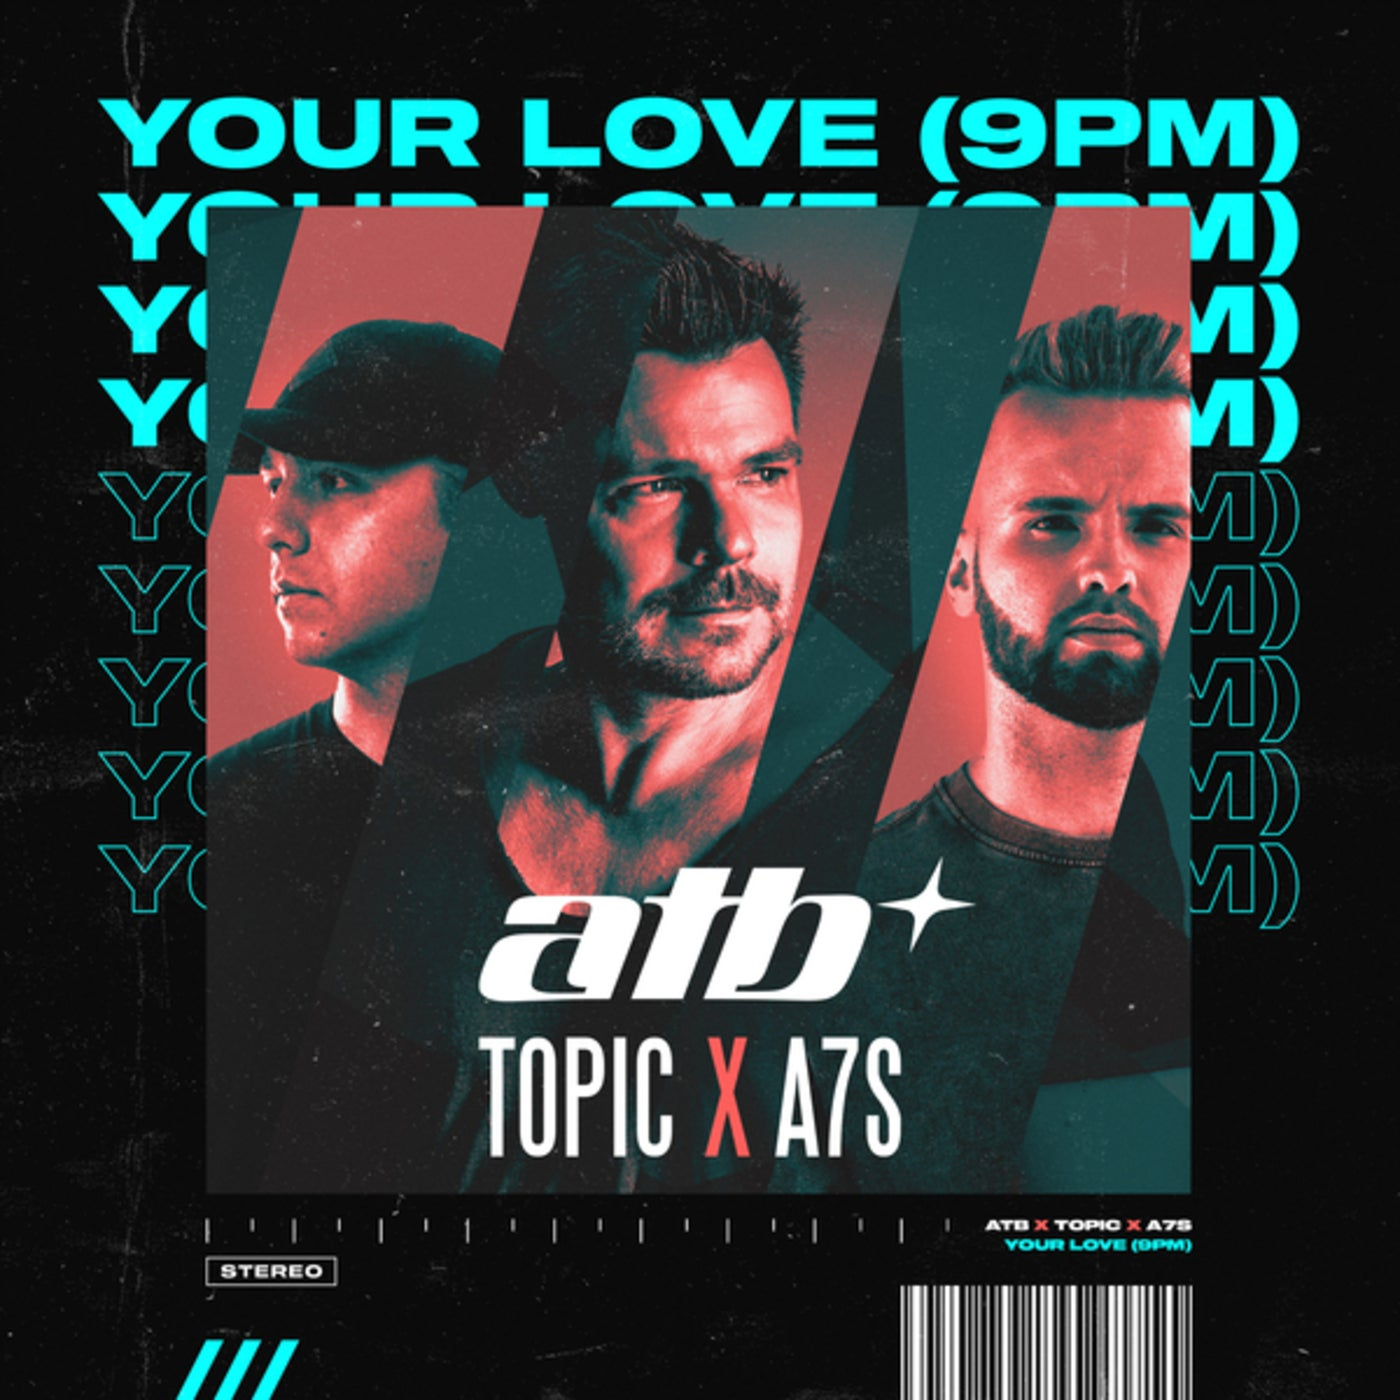 Your Love (9PM) (Extended Mix)